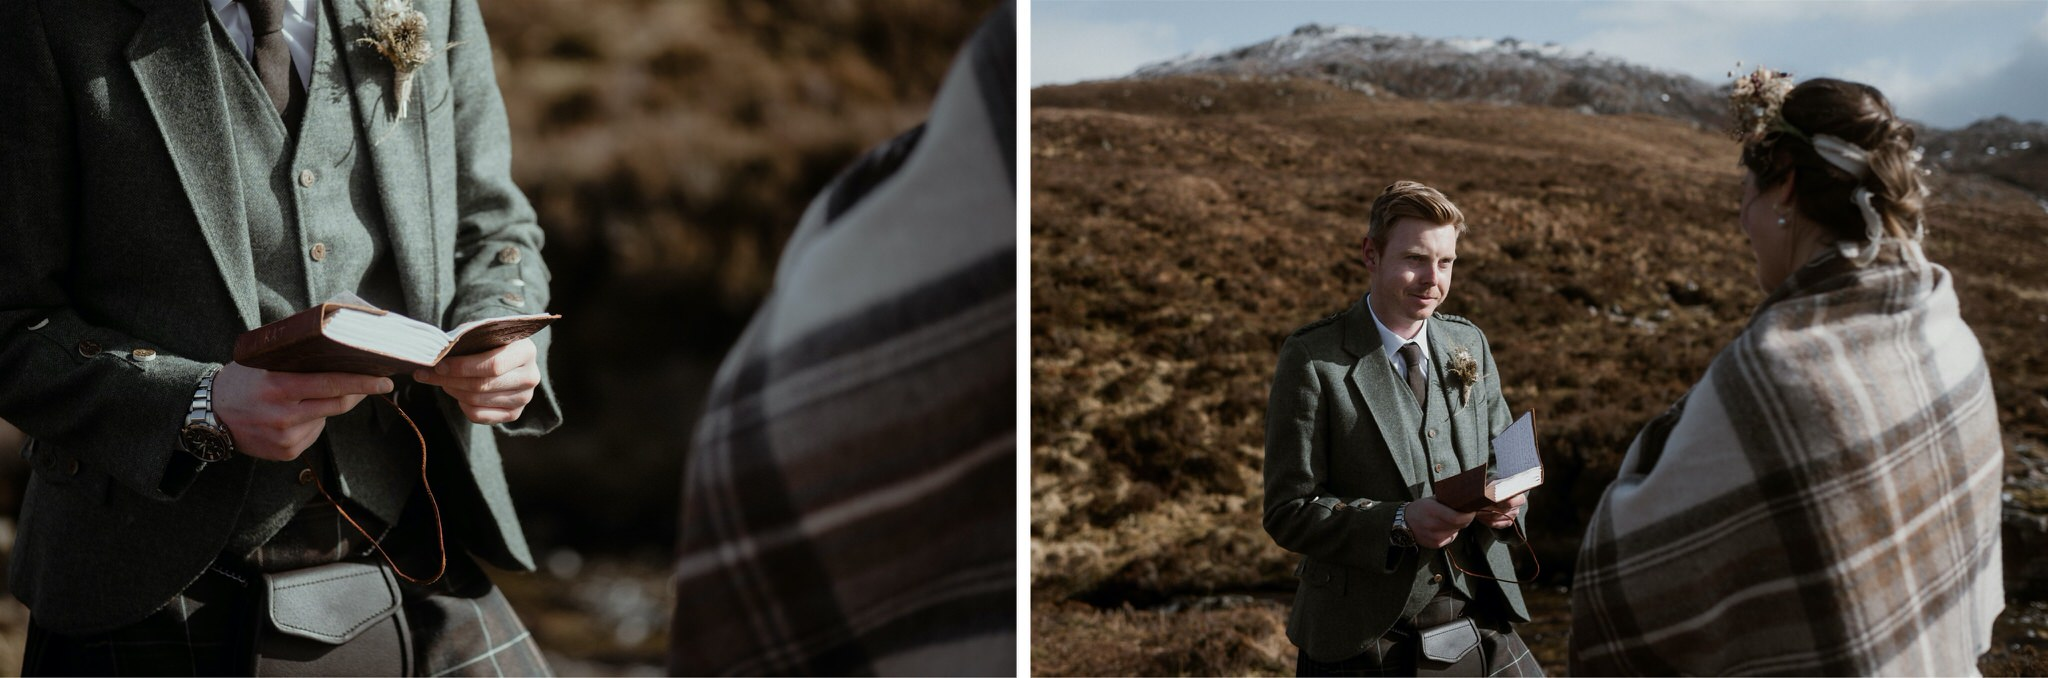 Detail shot of groom reading vows to his bride during an elopement wedding in Assynt, Scotland